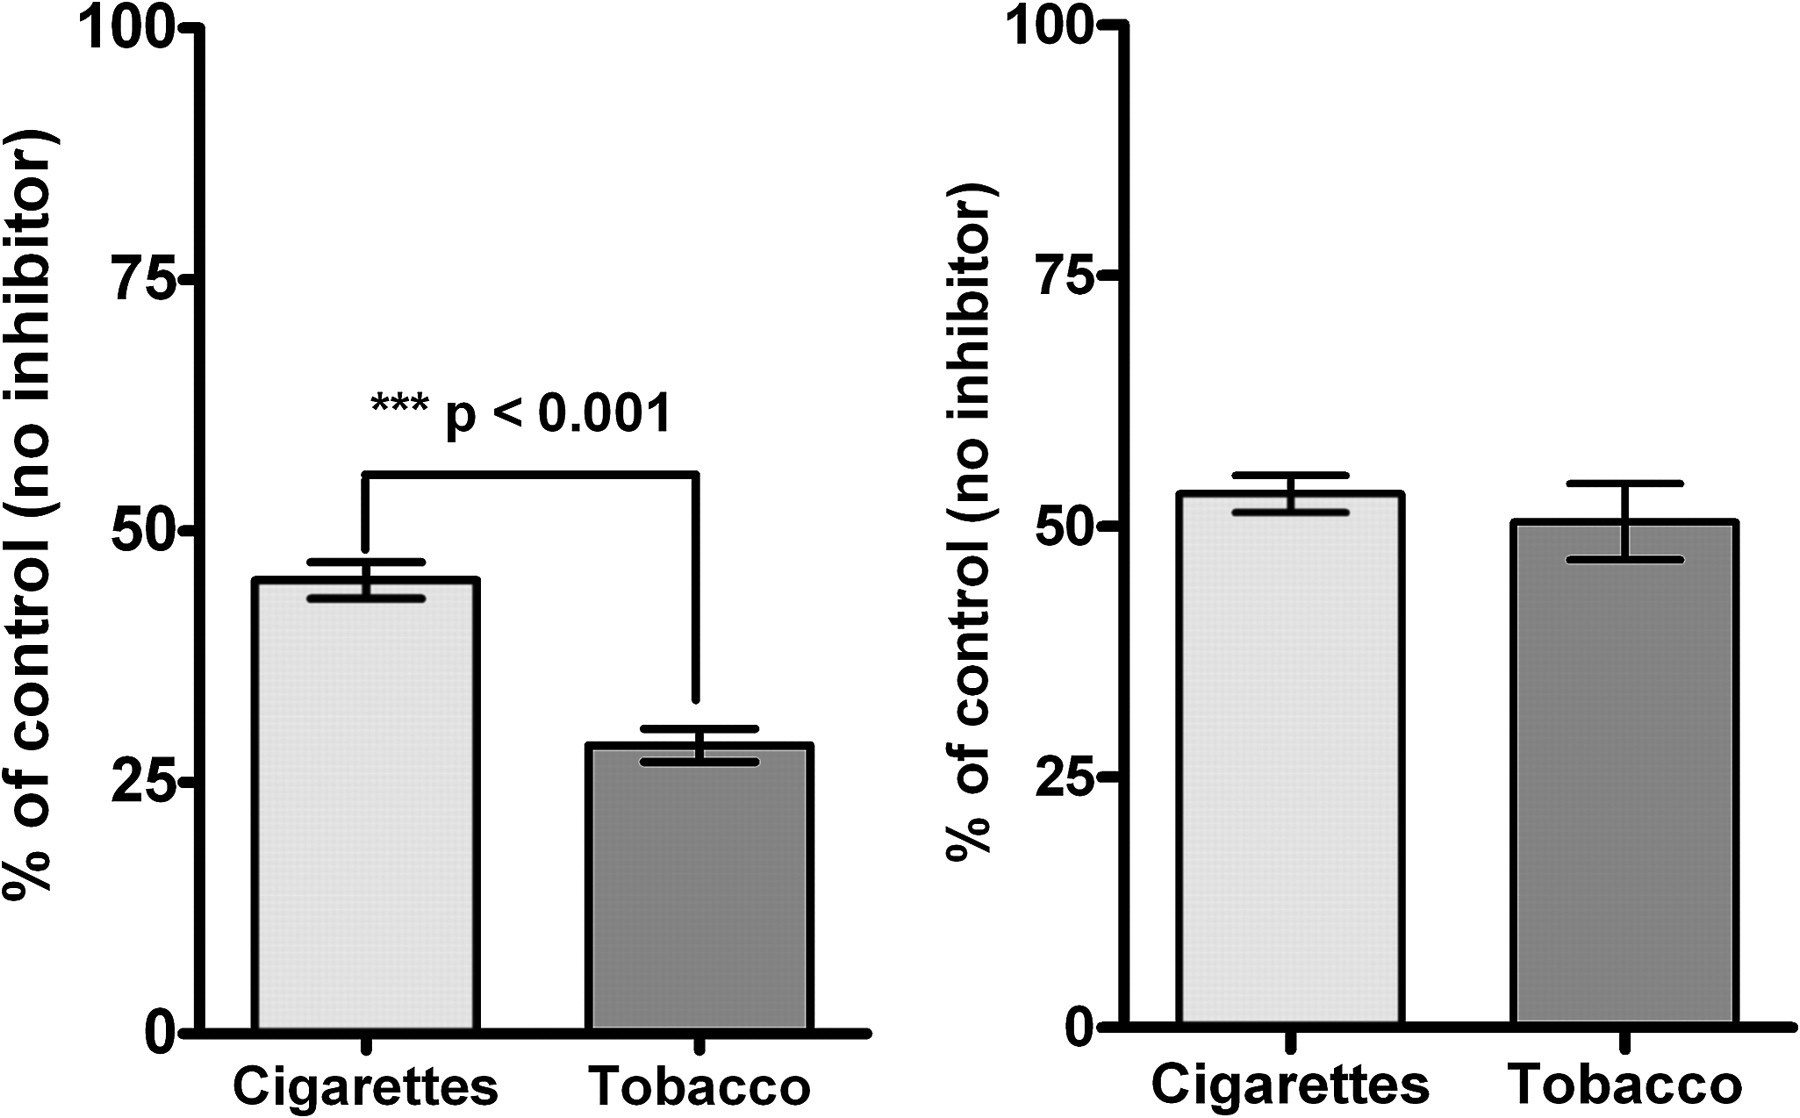 monoamine oxidase inhibitory activity in tobacco smoke varies with